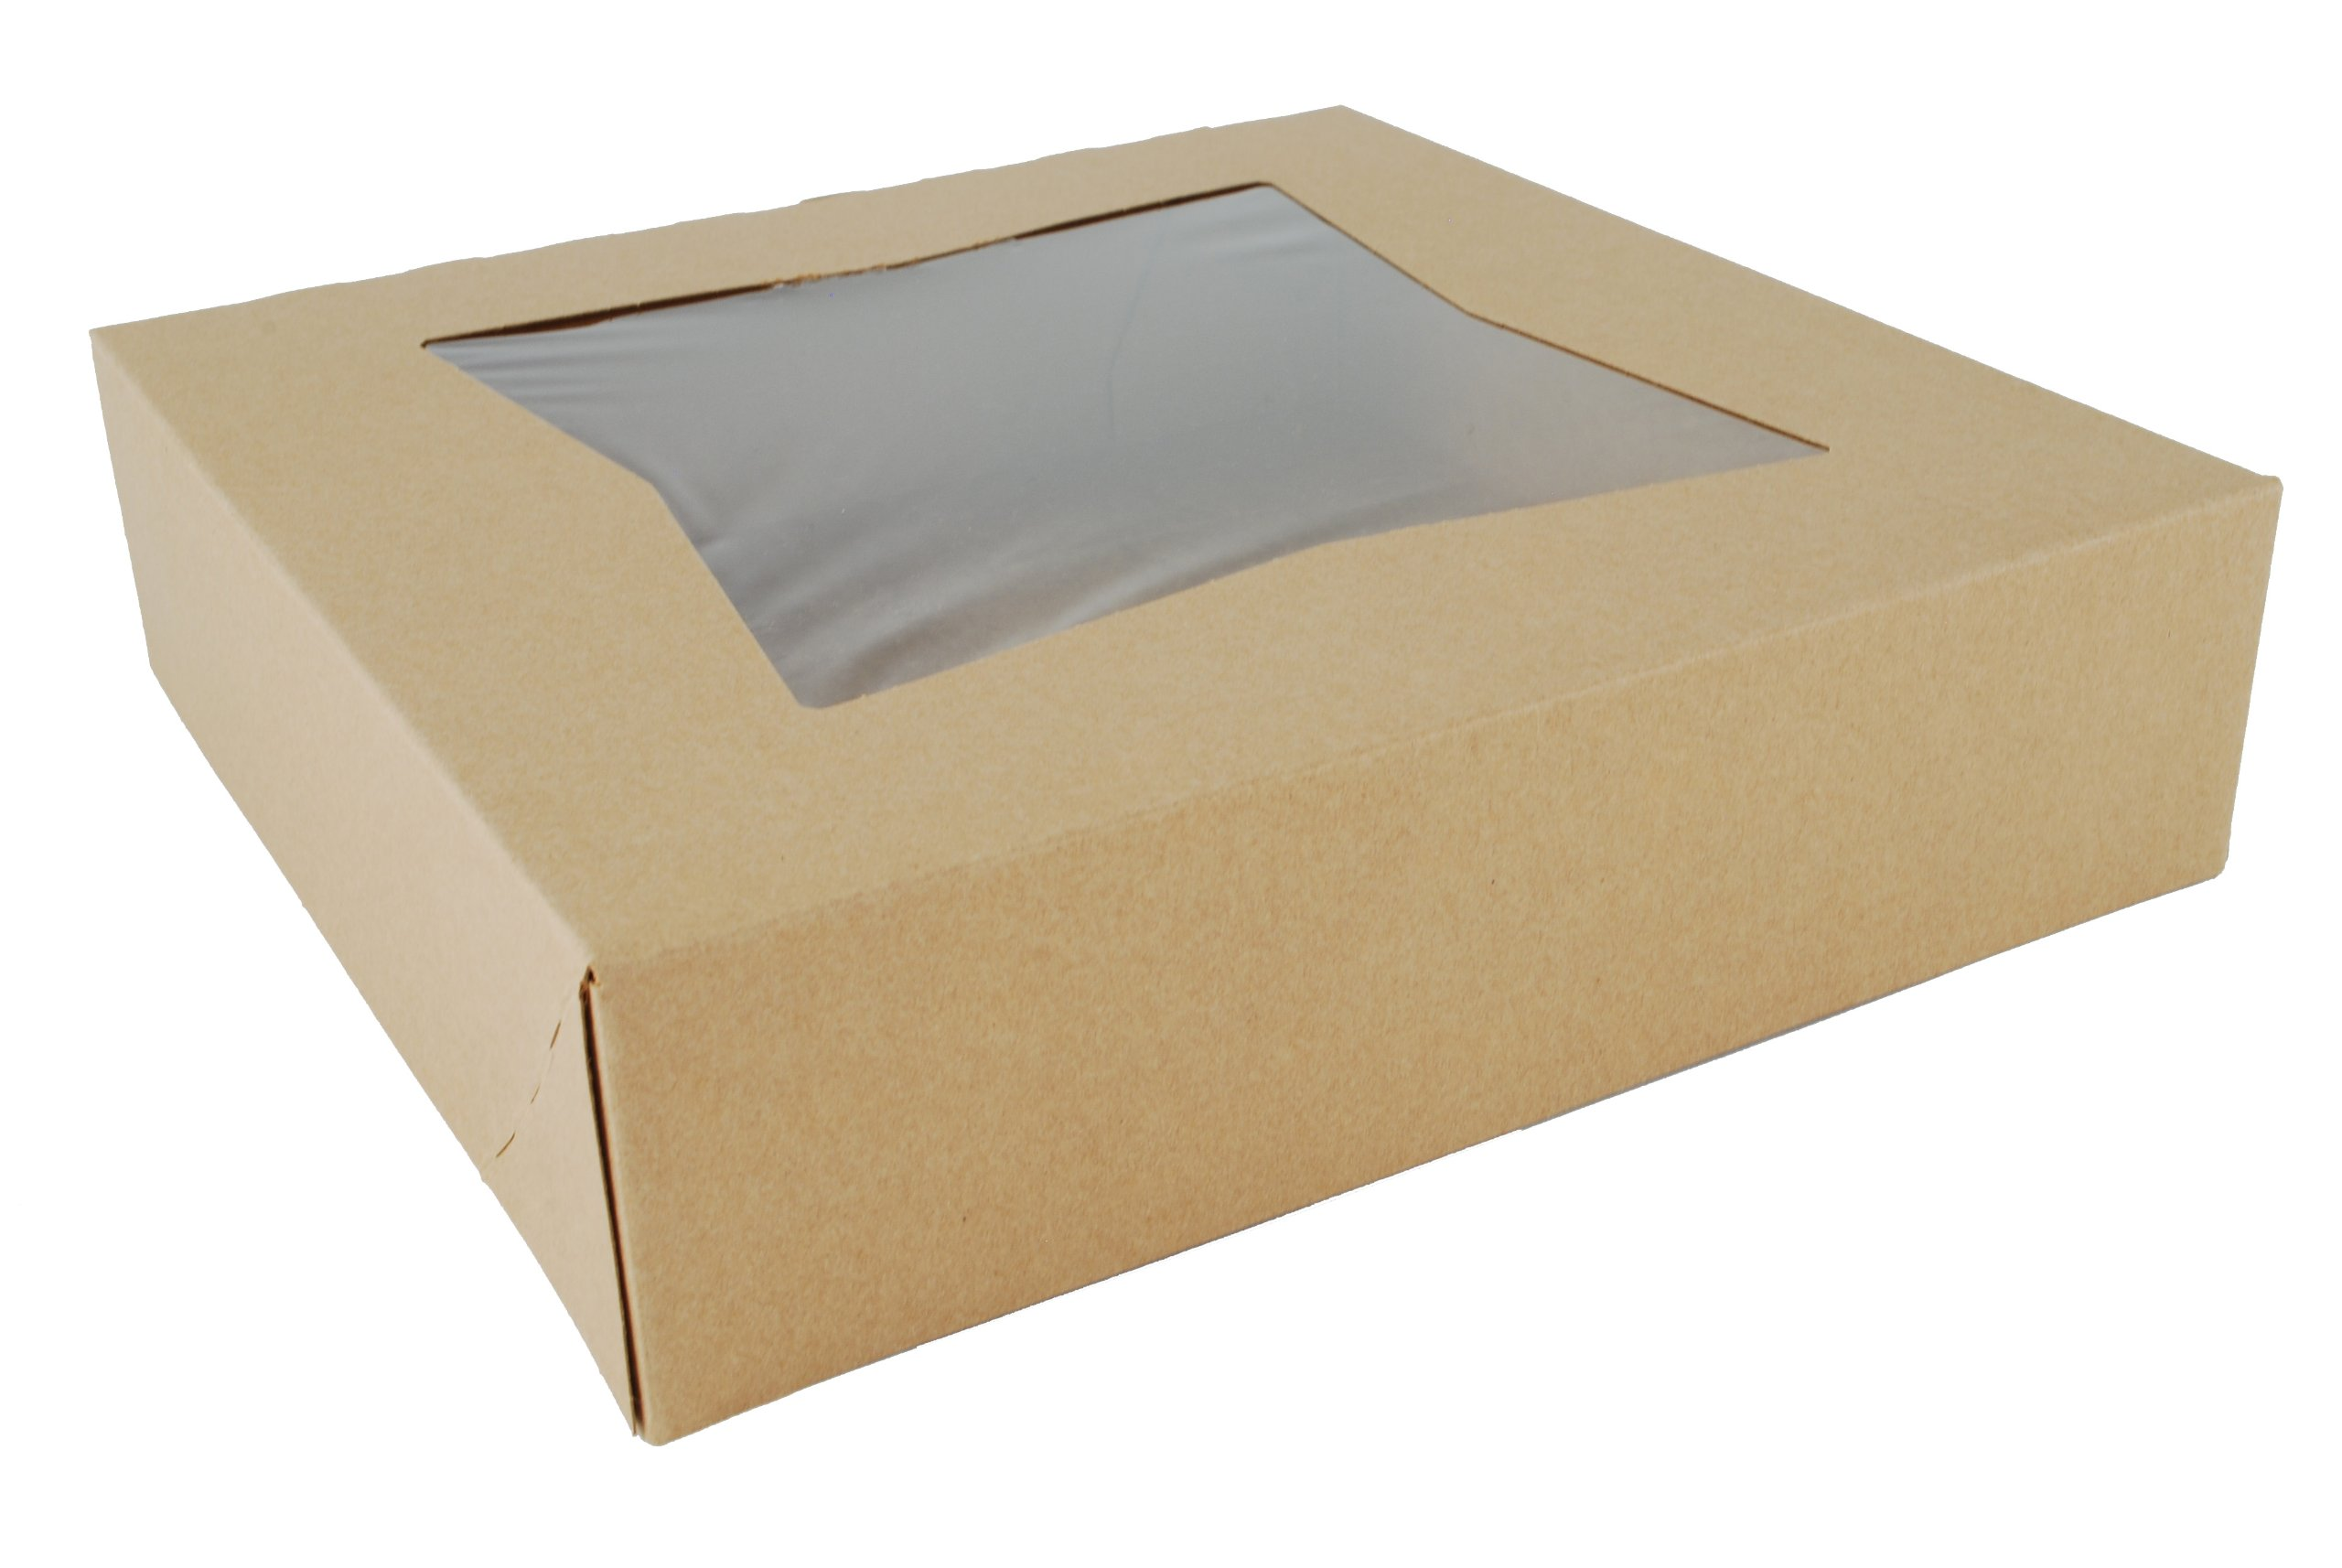 Southern Champion Tray 24233K Kraft Paperboard Window Bakery Box, 10'' Length x 10'' Width x 2-1/2'' Height (Case of 200)